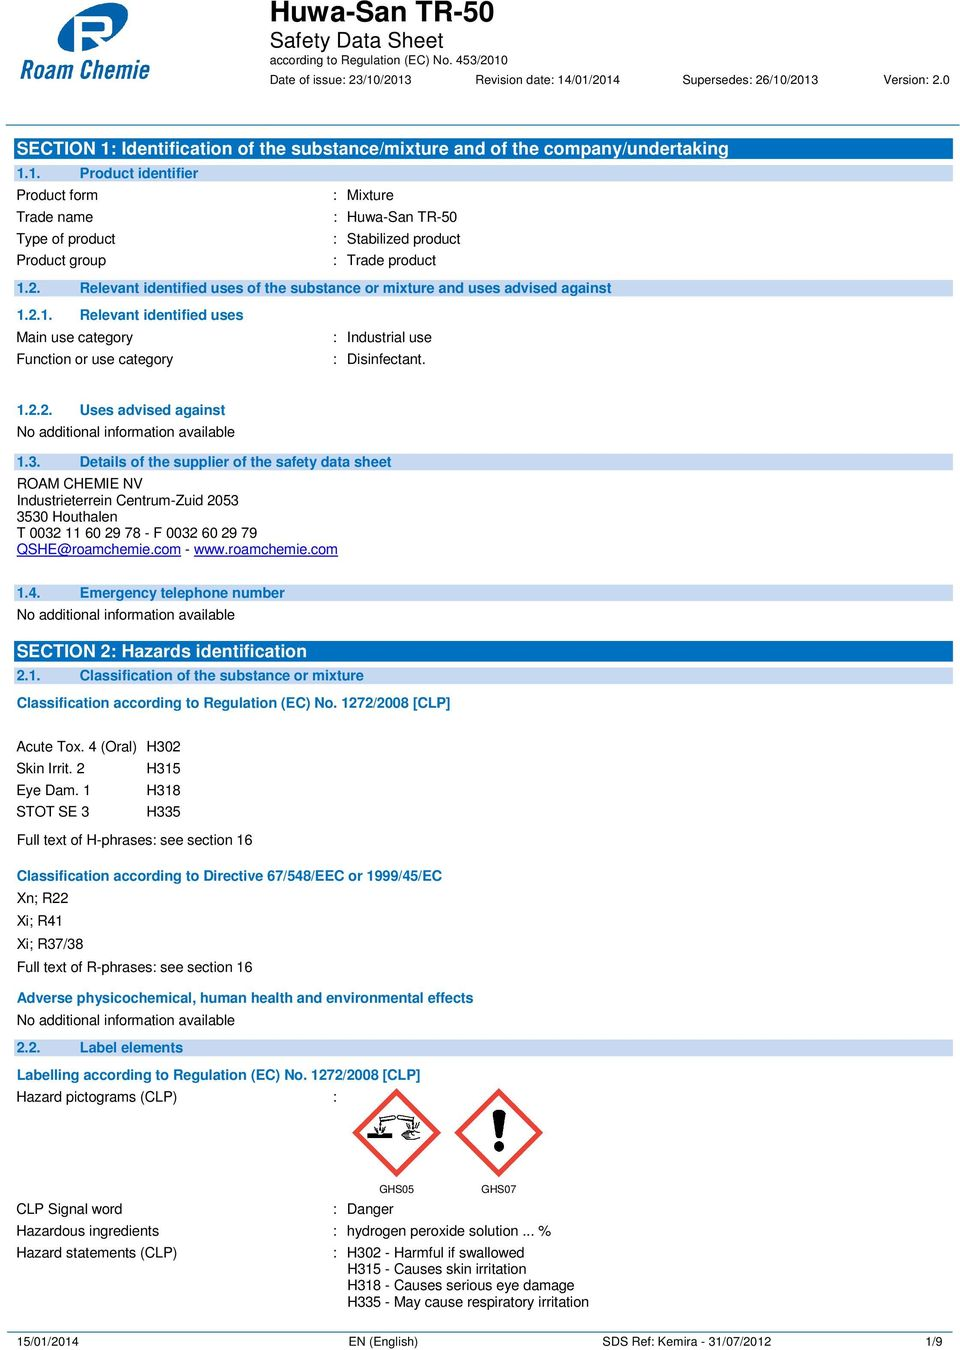 3. Details of the supplier of the safety data sheet ROAM CHEMIE NV Industrieterrein Centrum-Zuid 2053 3530 Houthalen T 0032 11 60 29 78 - F 0032 60 29 79 QSHE@roamchemie.com - www.roamchemie.com 1.4.